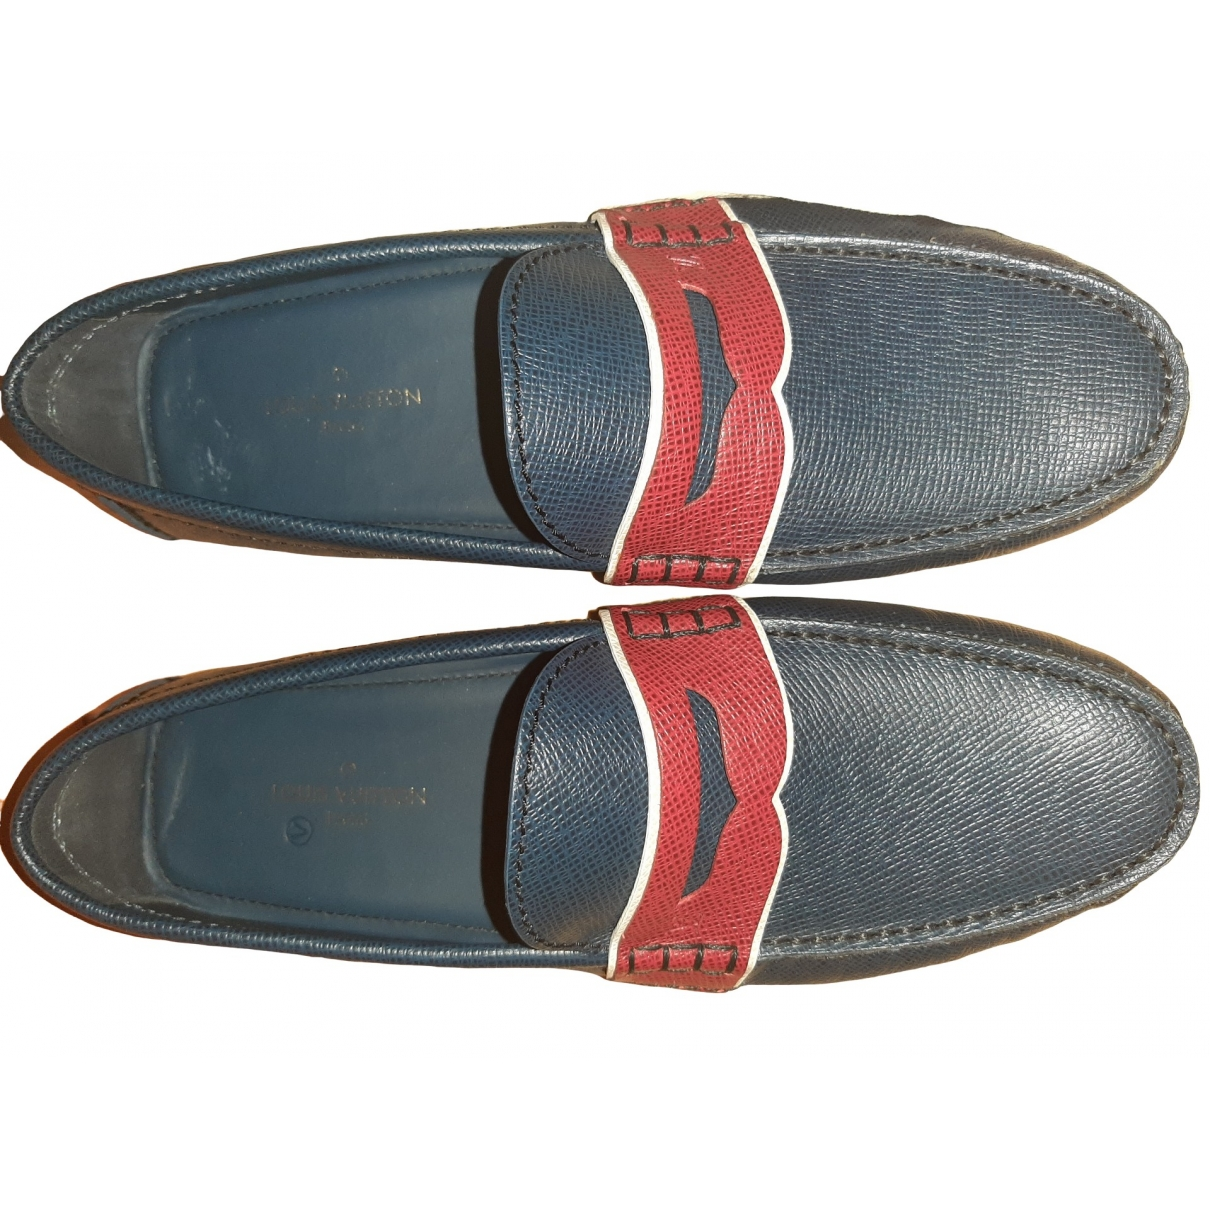 Louis Vuitton \N Blue Leather Flats for Men 7 US